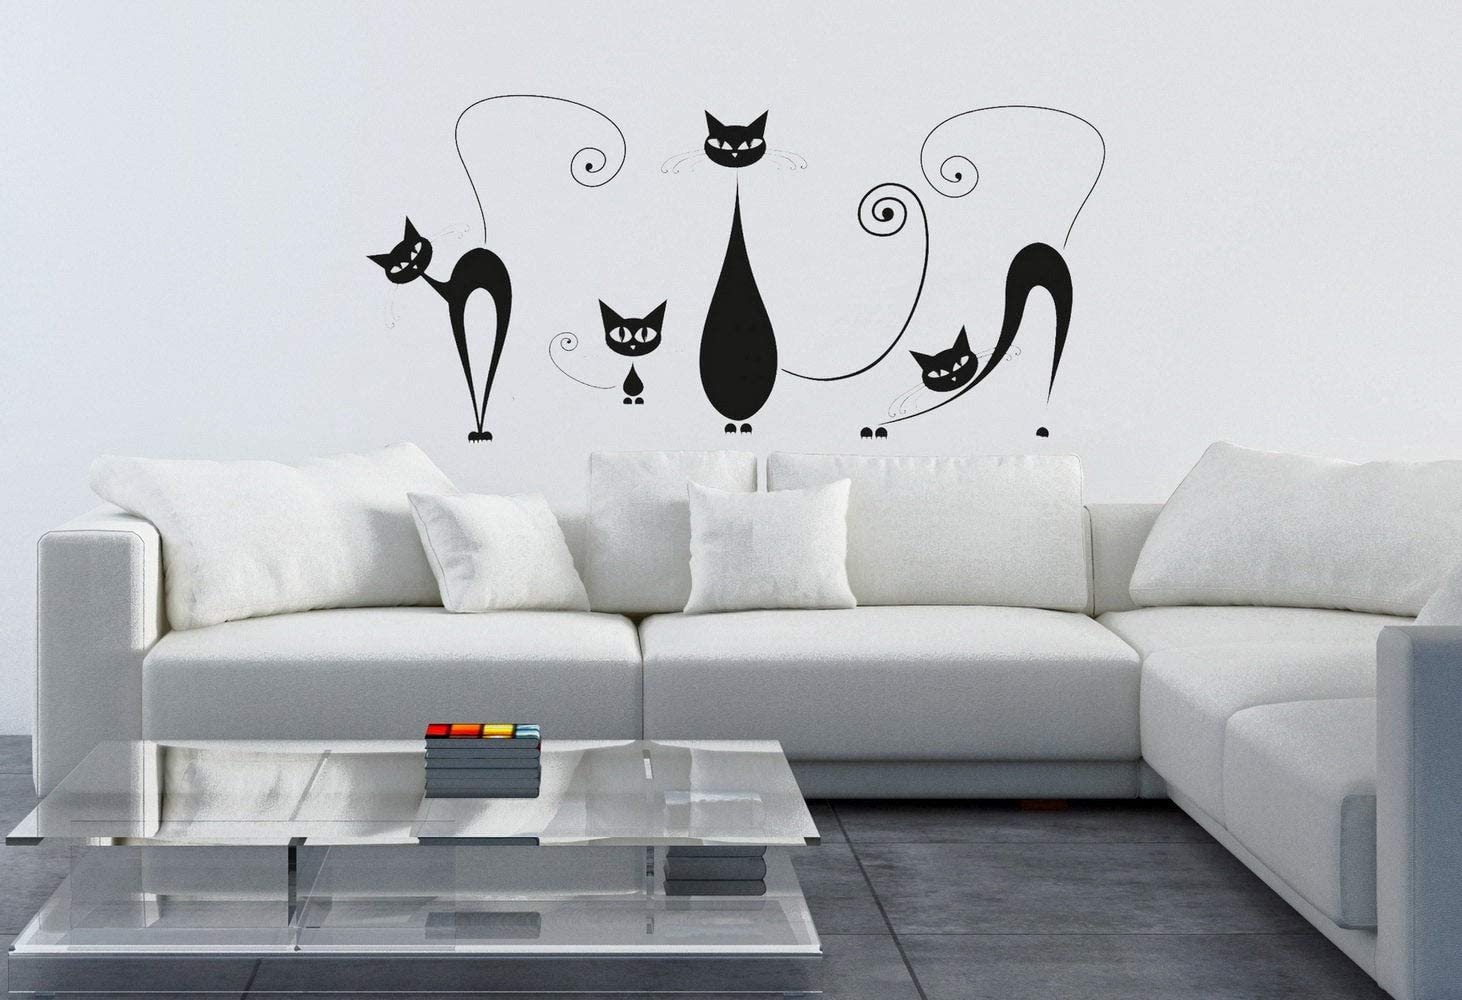 CECILIAPATER Cat Kitten Animal Wall Sticker Decal Room Kitchen House Mural Art Cats 9 pcs/Set Children Bedroom Nursery Wall Decoration PVC Sticker